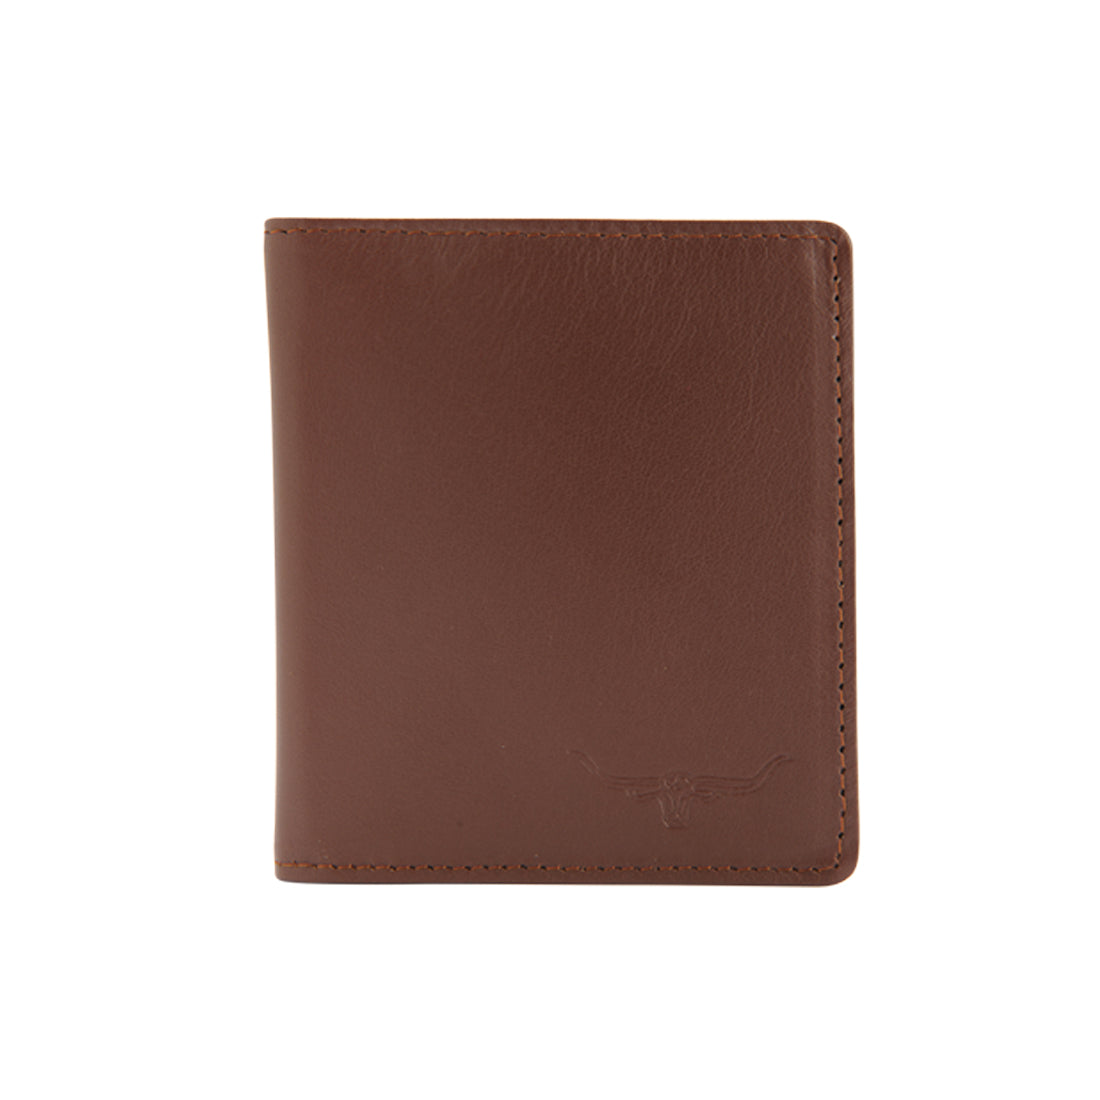 R.M.Williams Kangaroo Leather Brown Trifold-Wallet CG453.06